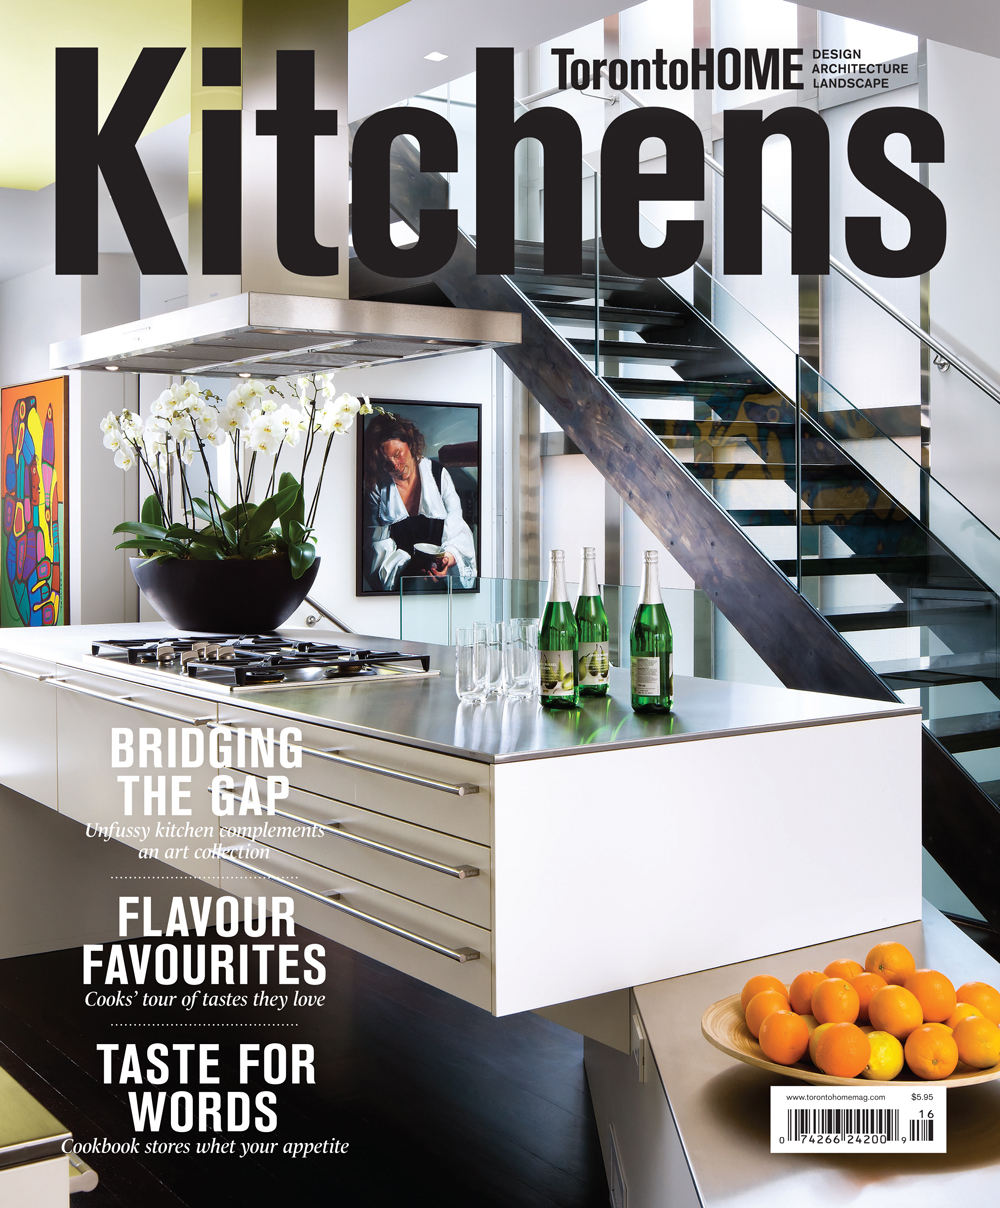 TorontoHOME Kitchens Cover